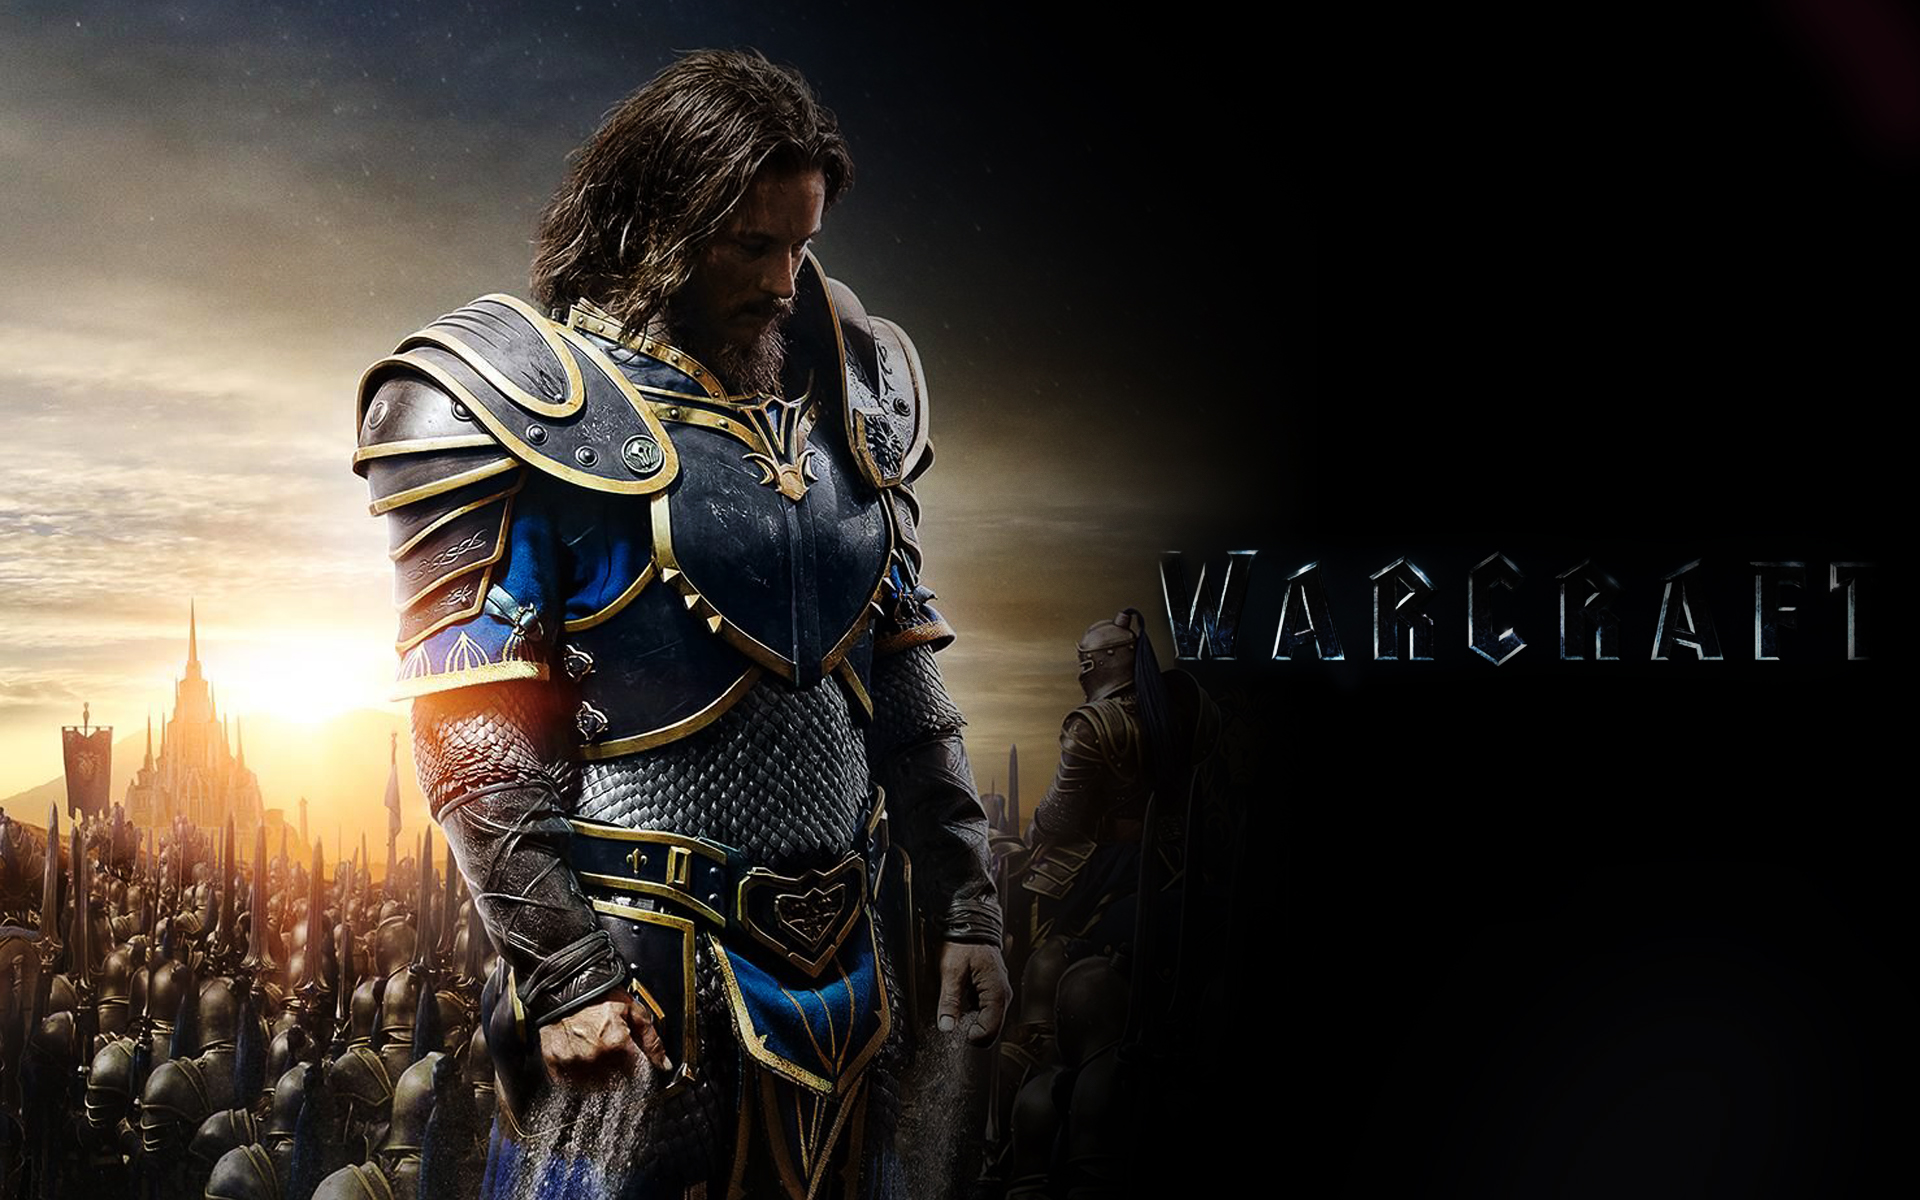 Previewing Film: Warcraft